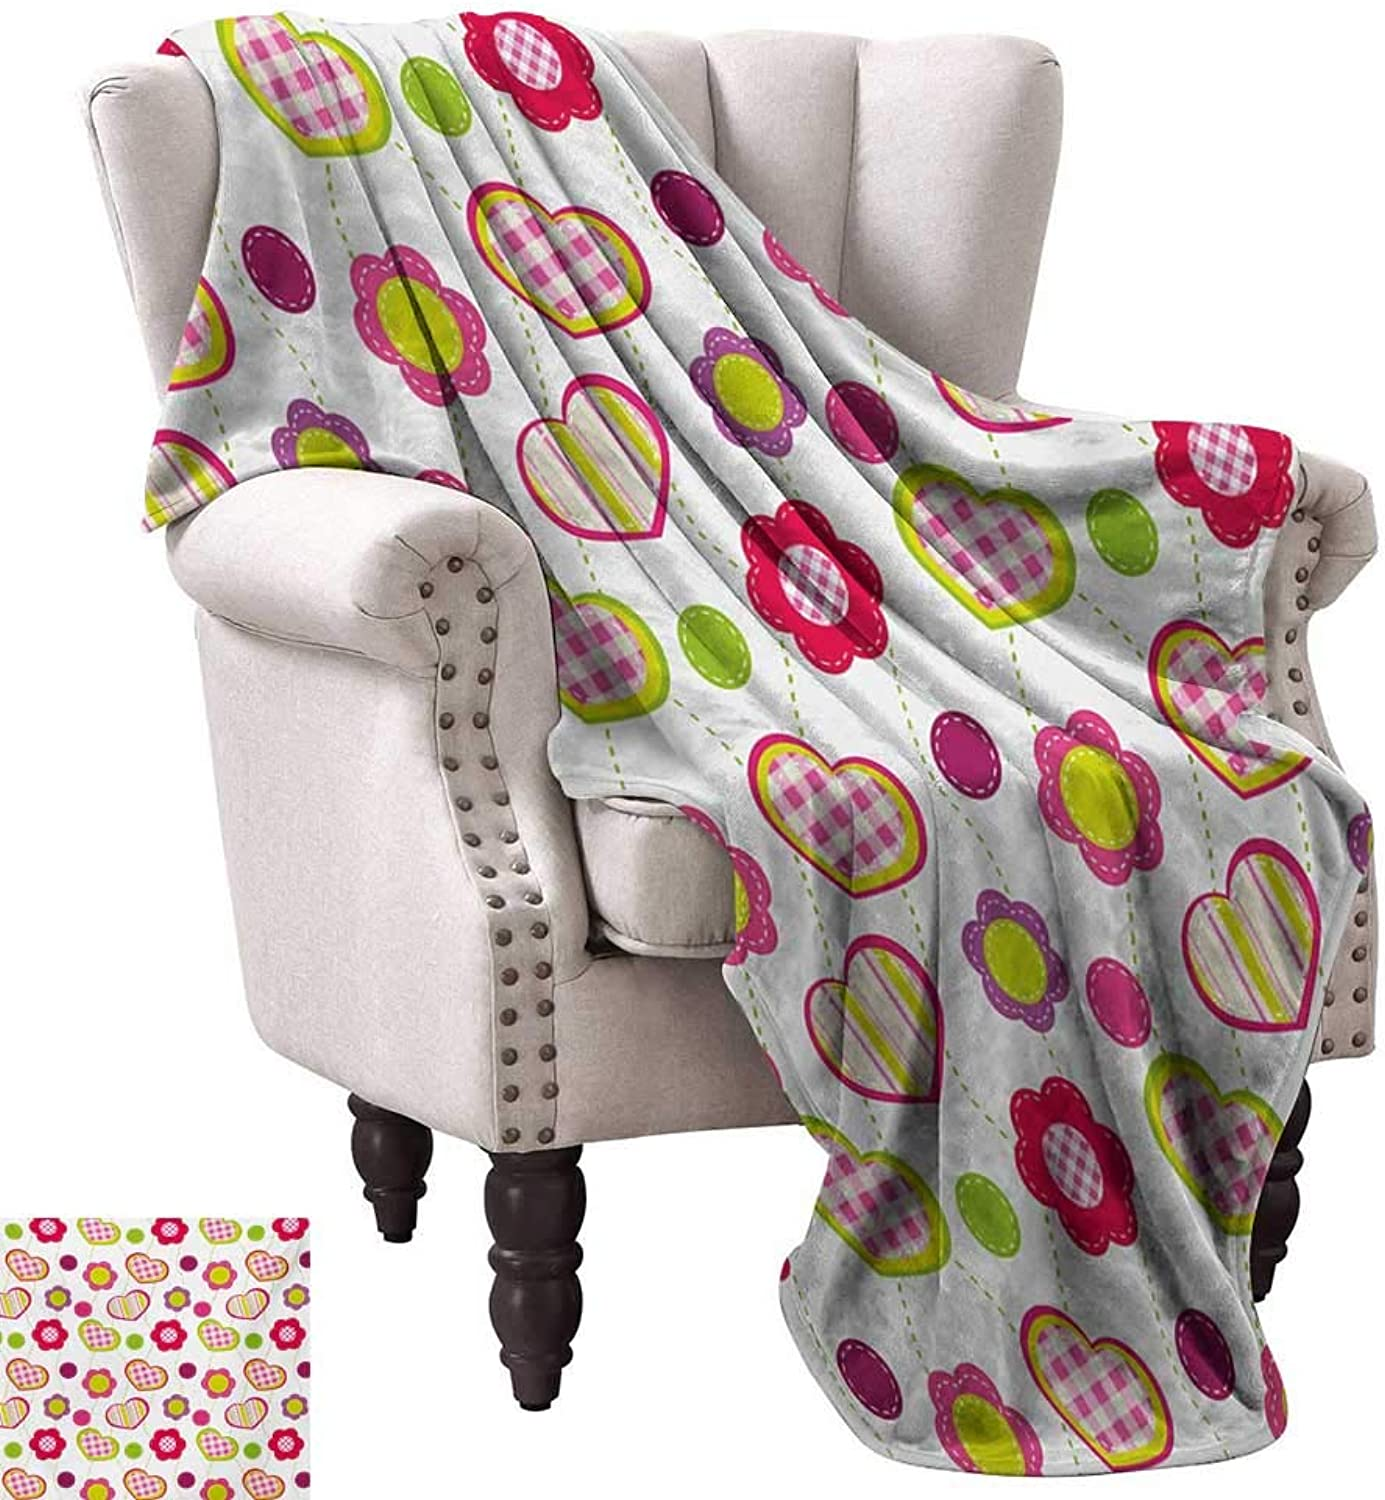 Kids Home Throw Blanket Patchwork Inspired Design colorful Patterned Flowers Hearts and Dots Retro Girlish Fall Winter Spring Living Room 60  Wx60 L Multicolor